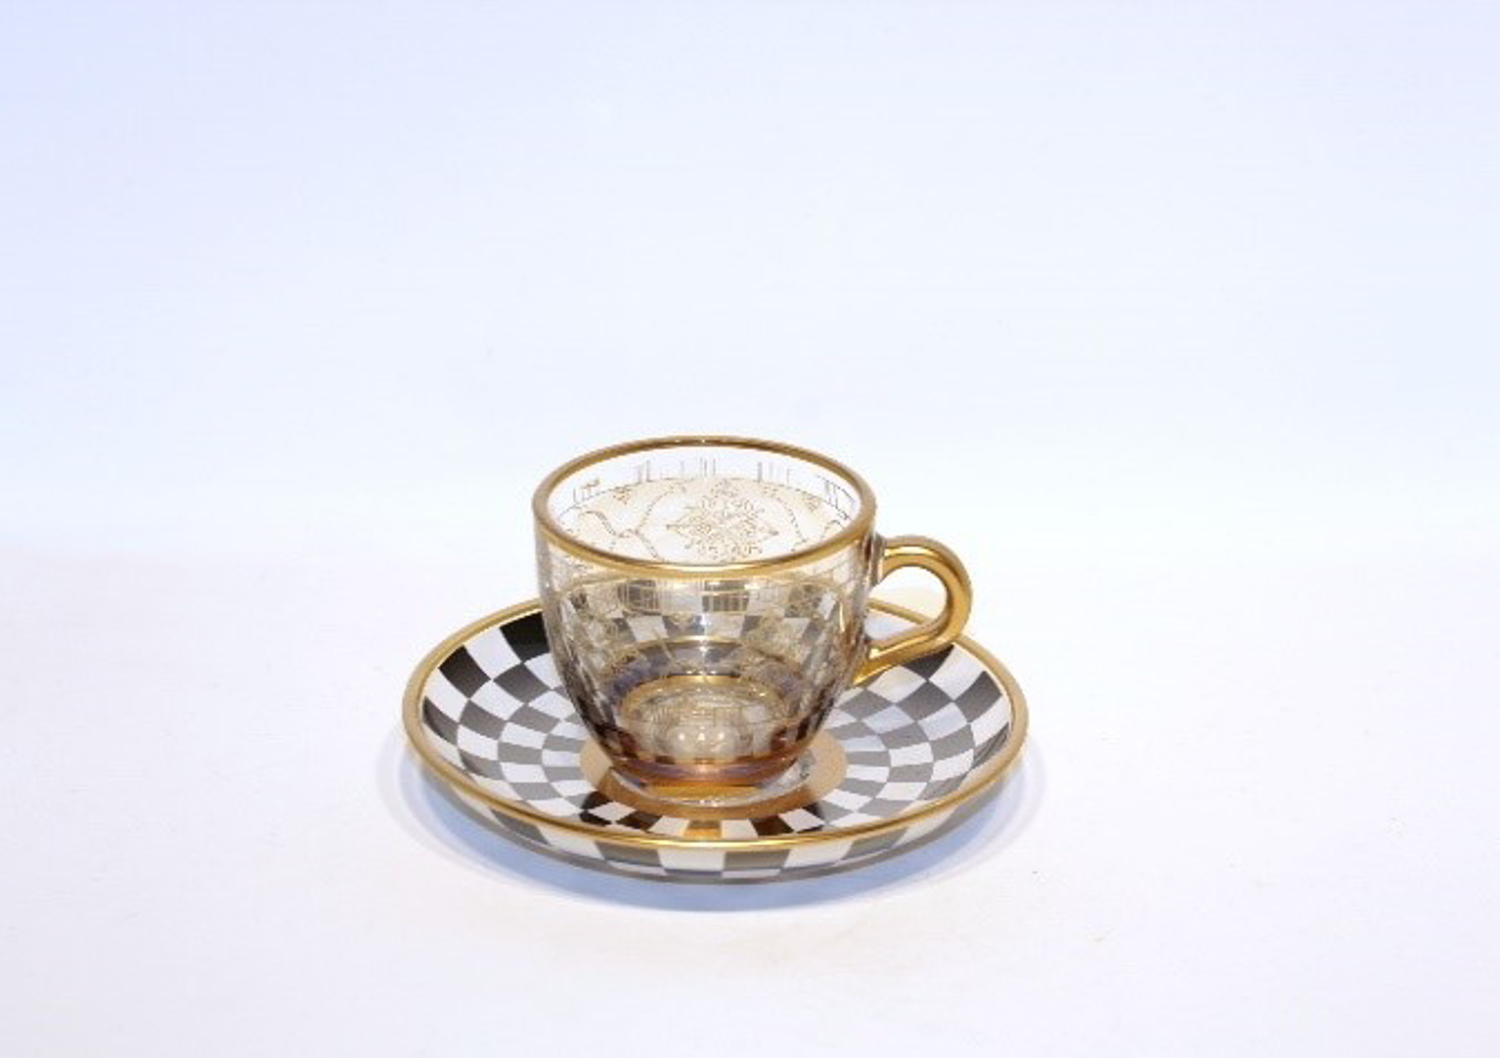 MEVLANA TURKISH COFFEE CUP SET HERMES resmi